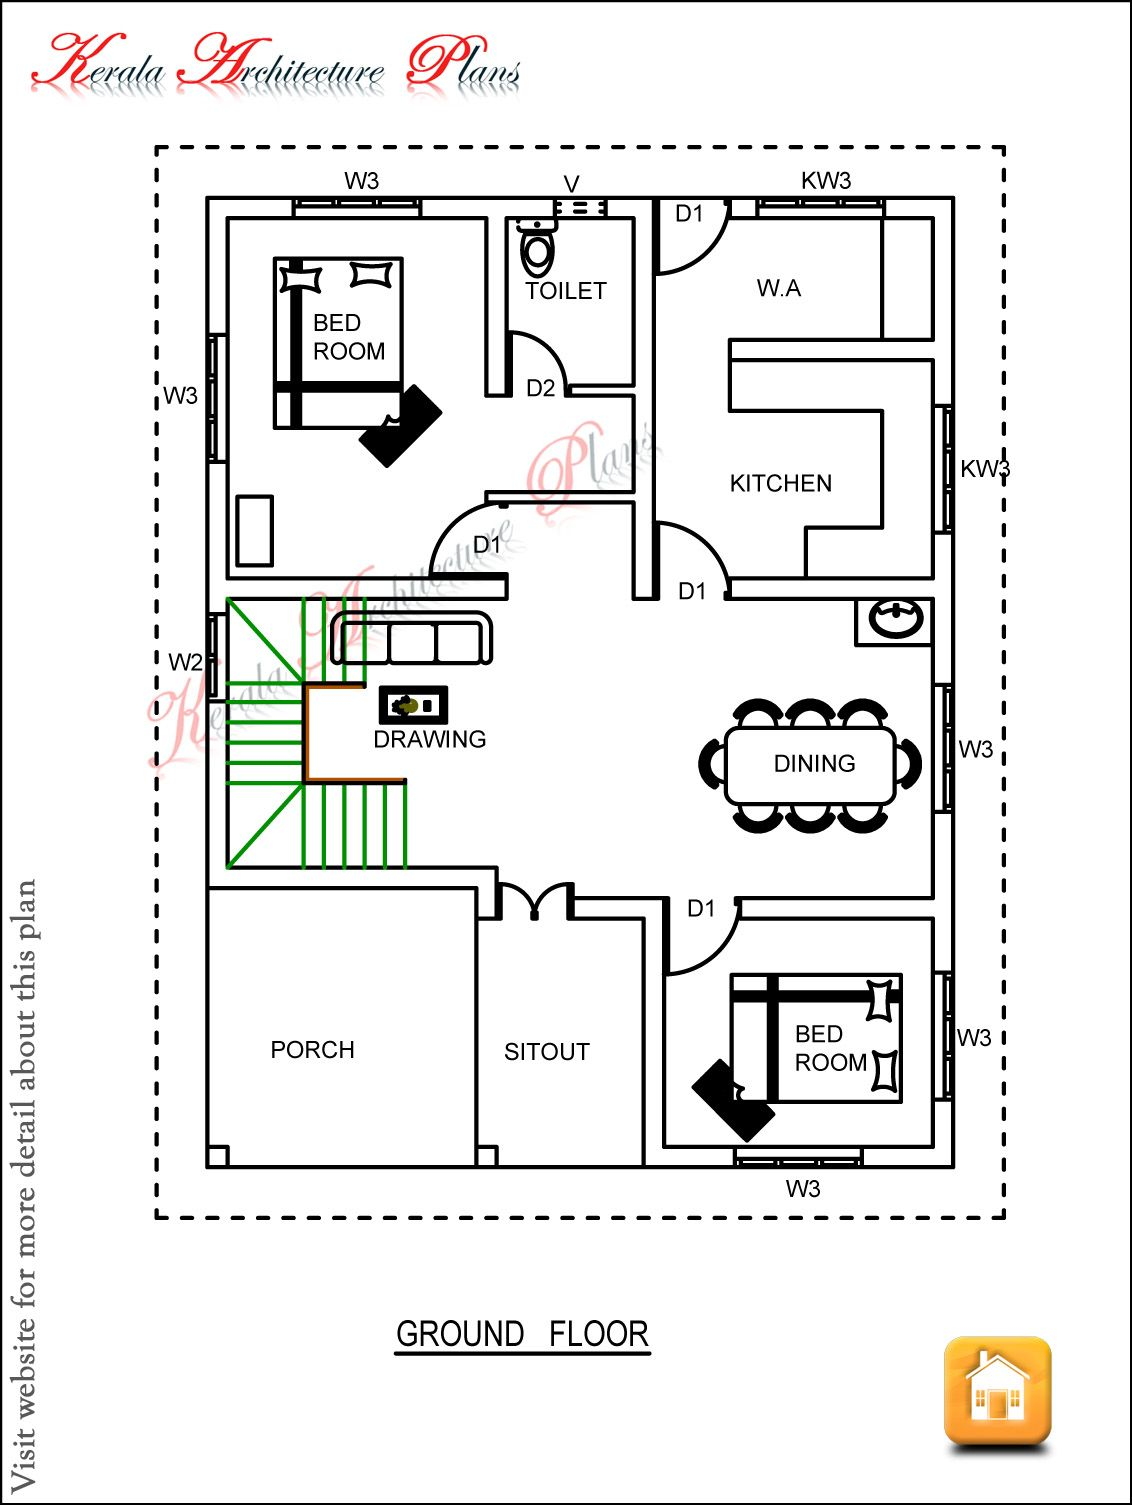 Kerala Architecture Plans Dec 08 Gf Jpg 1132 1505 Three Bedroom House Plan Bedroom House Plans Architectural House Plans